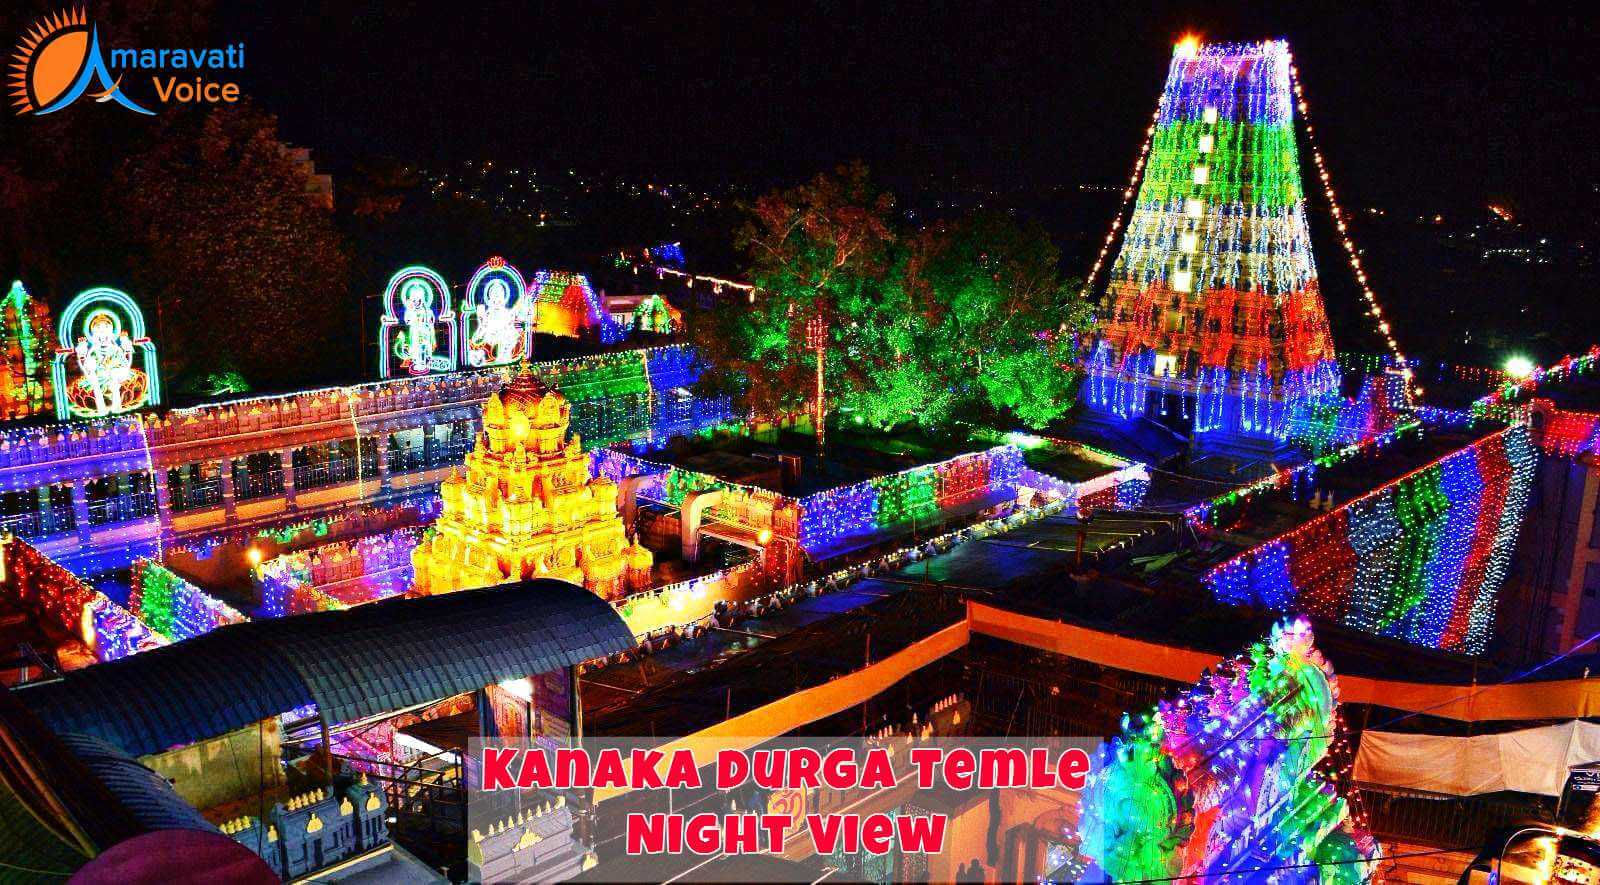 Kanaka Durga Temple Illuminated on Dasara Night